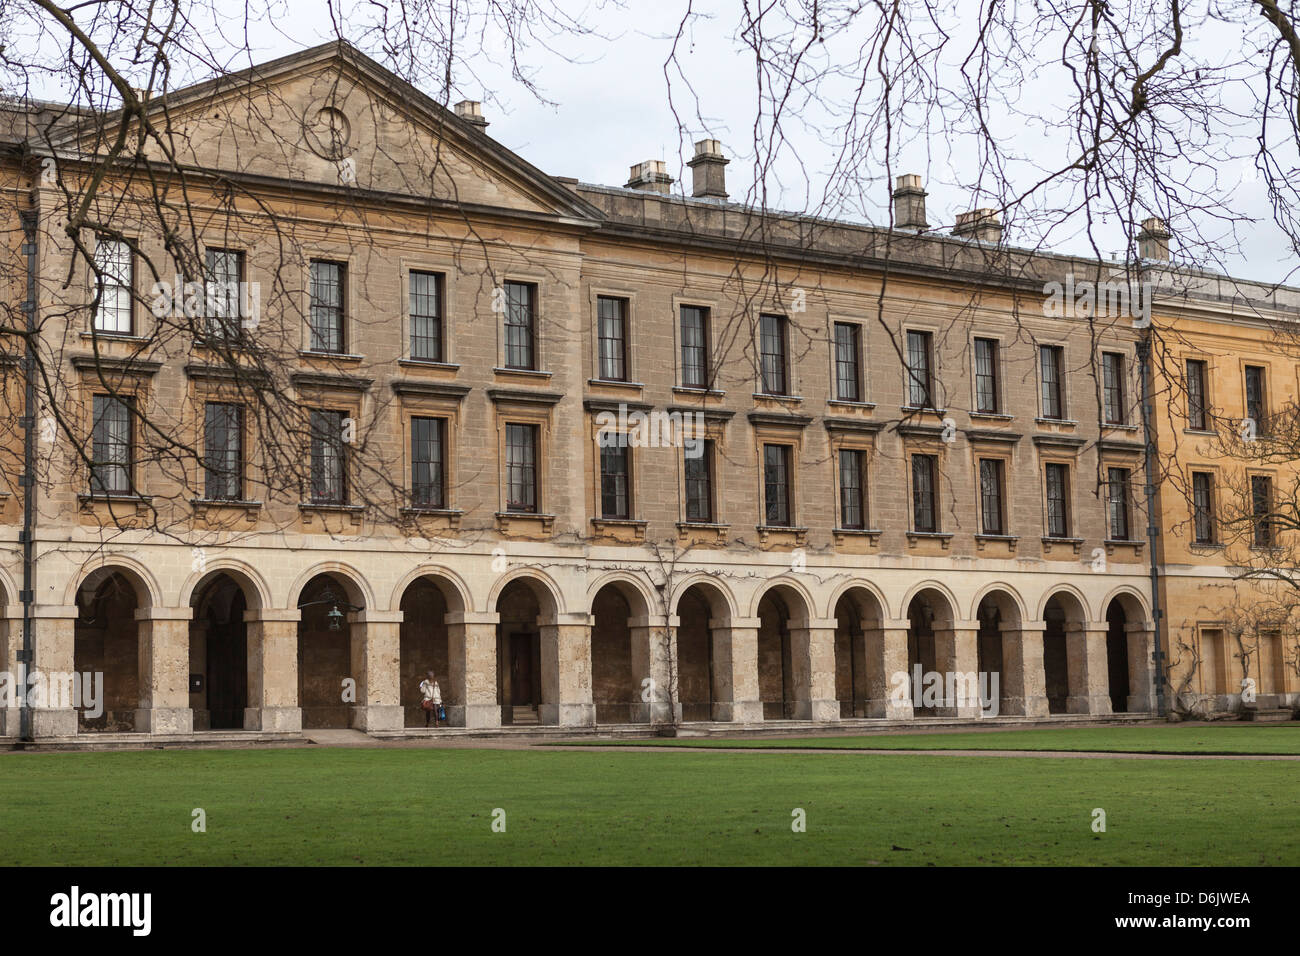 Nouveau bâtiment, Magdalen College, Oxford, Oxfordshire, Angleterre, Royaume-Uni, Europe Photo Stock